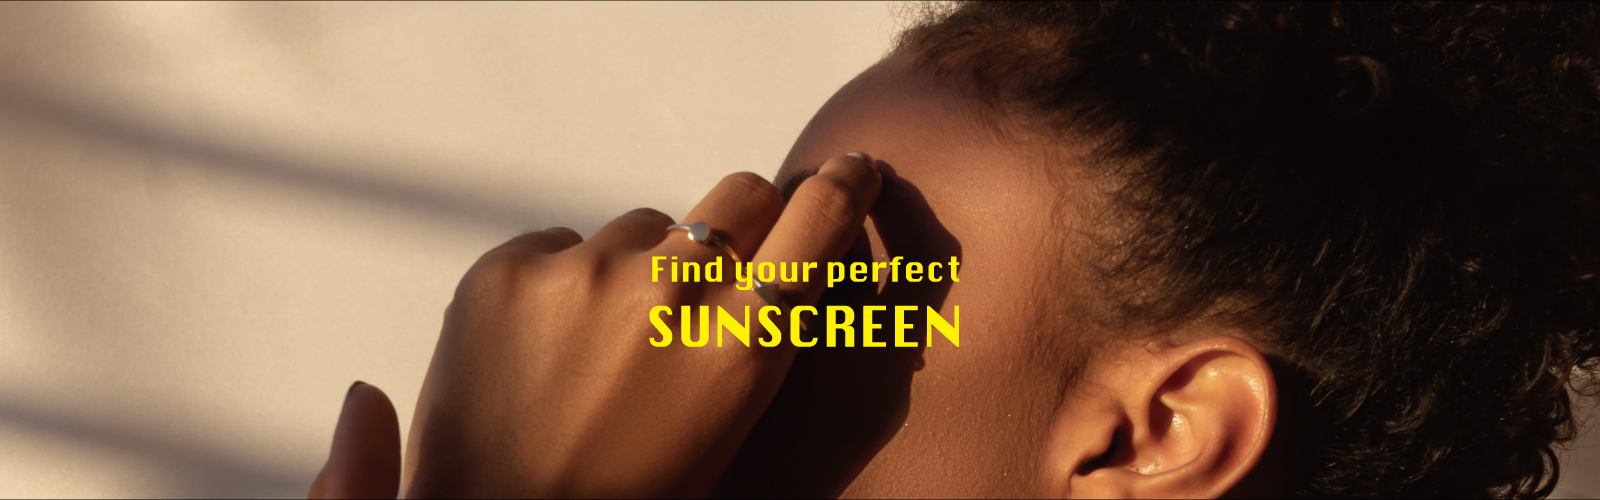 find-your-perfect-sunscreen.jpg